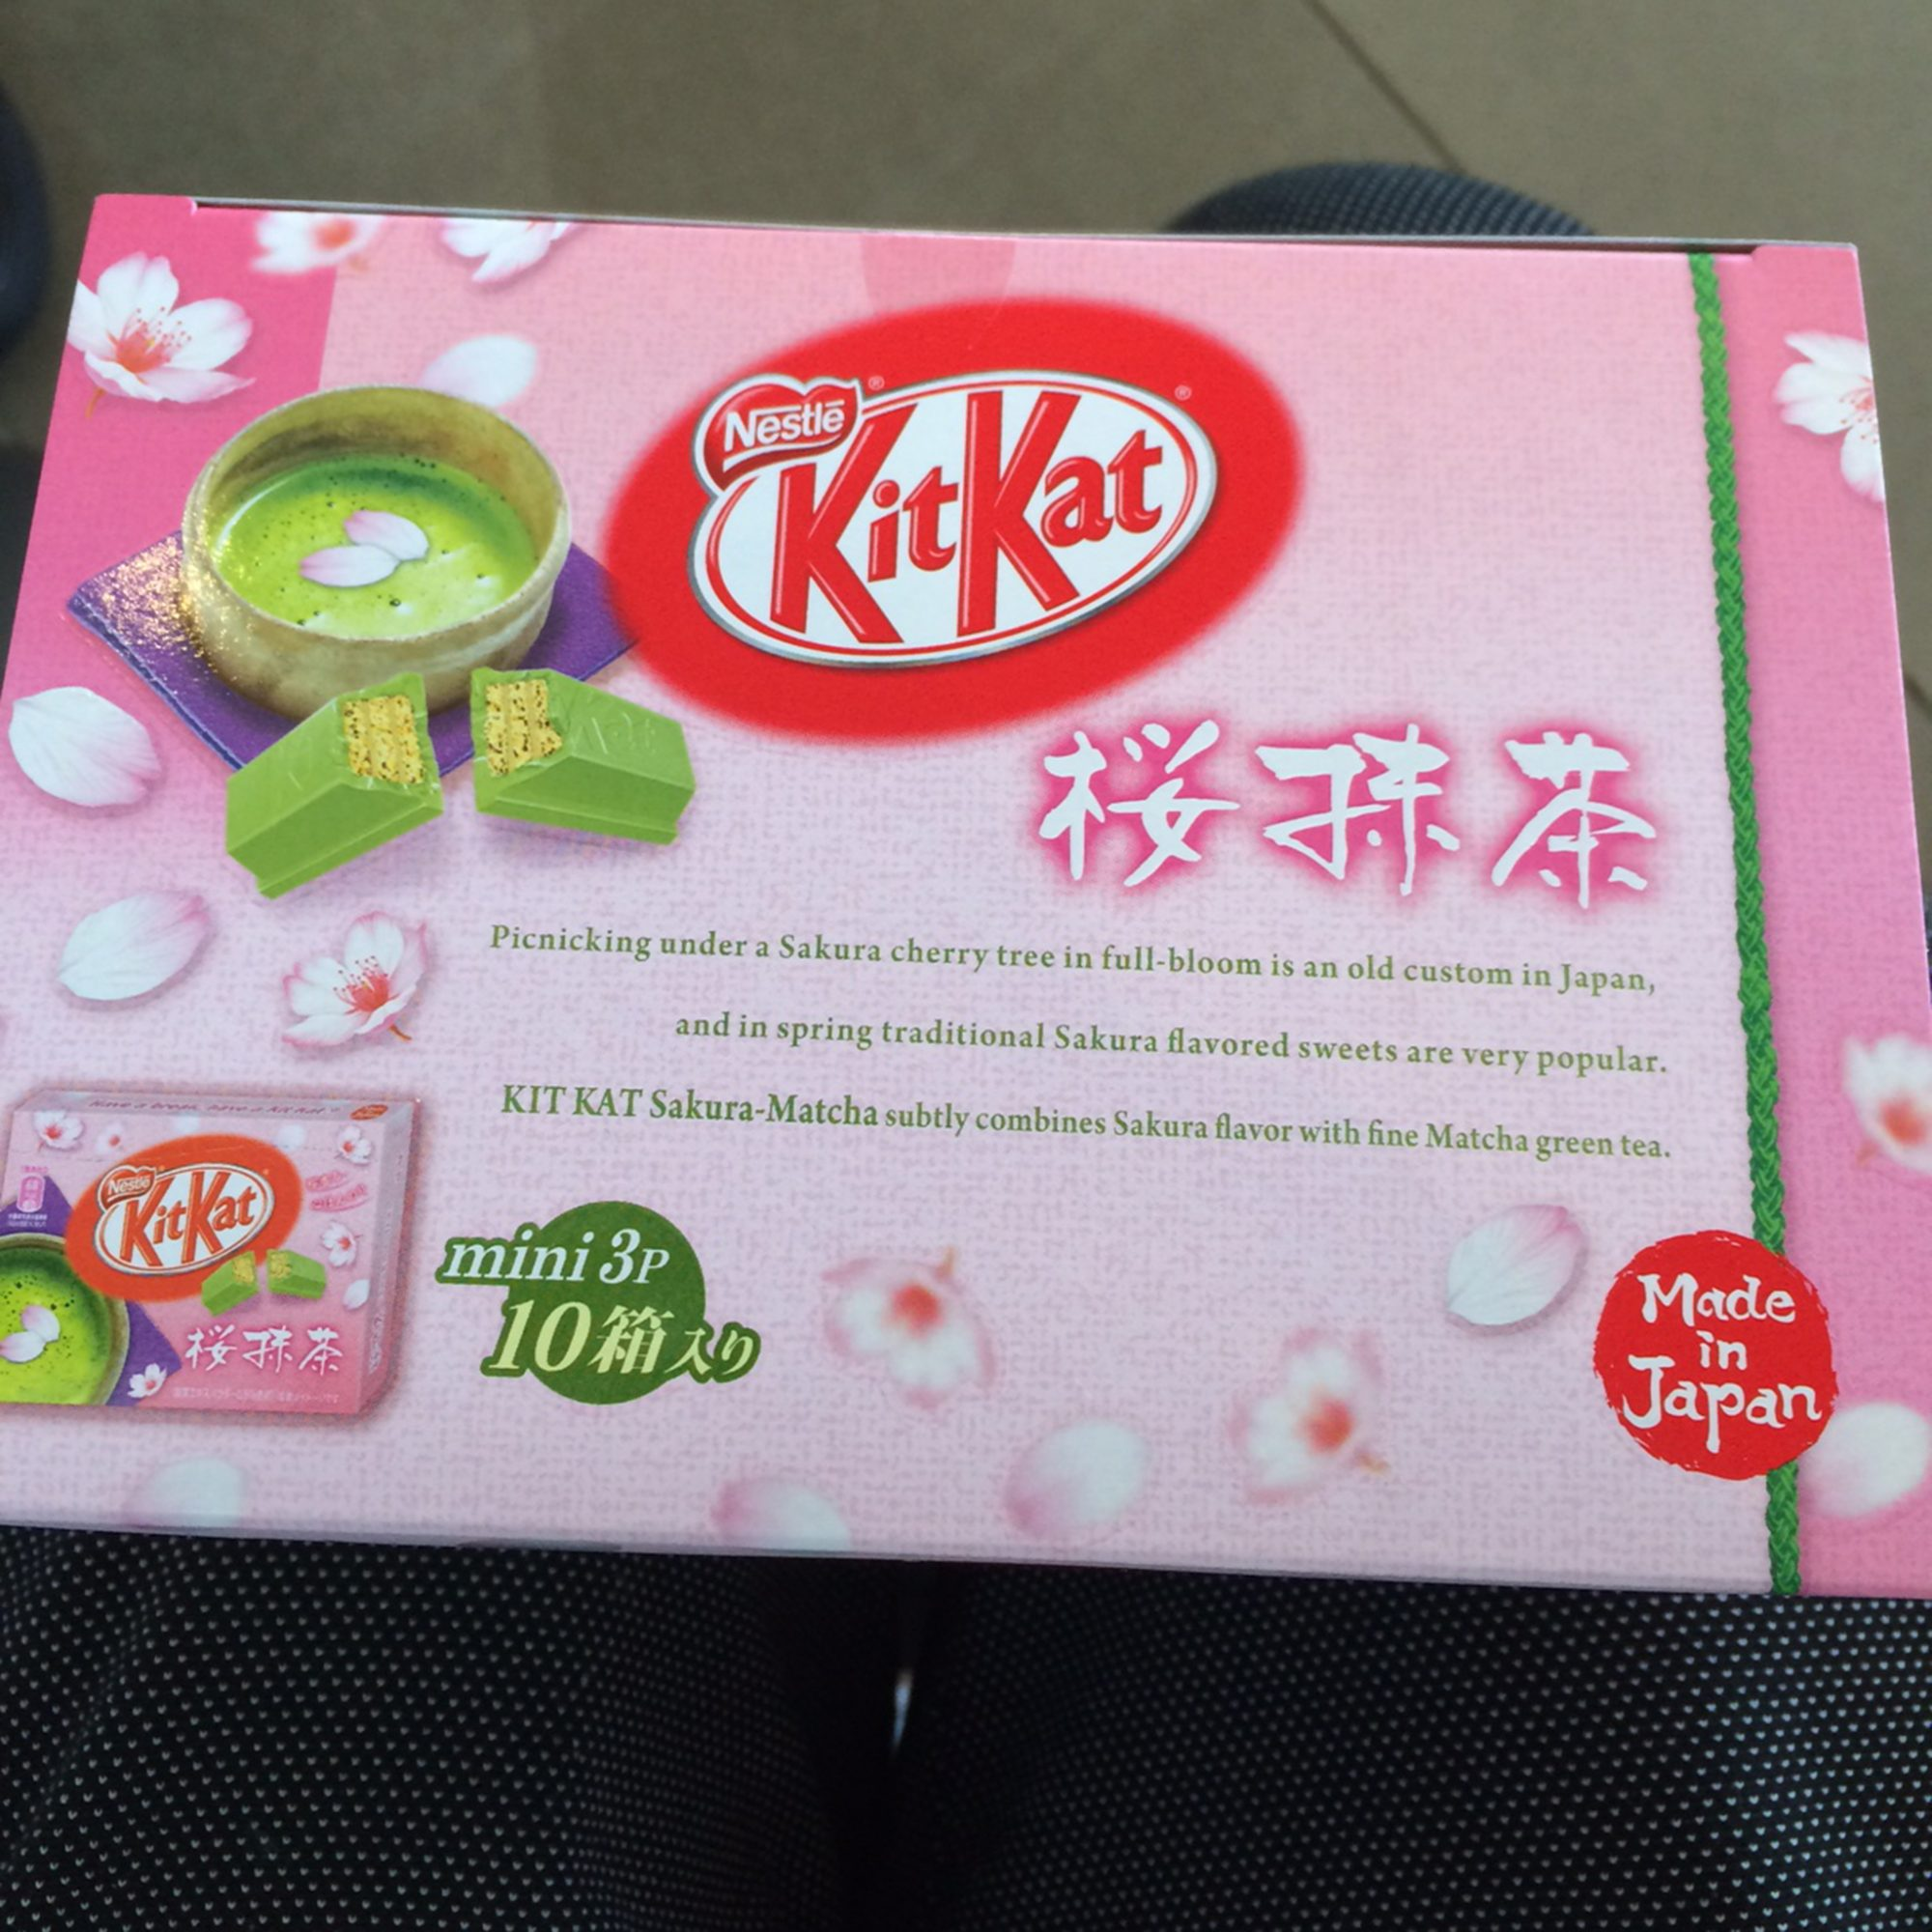 The Best Place to Buy Elusive Cherry Blossom KitKats in Japan